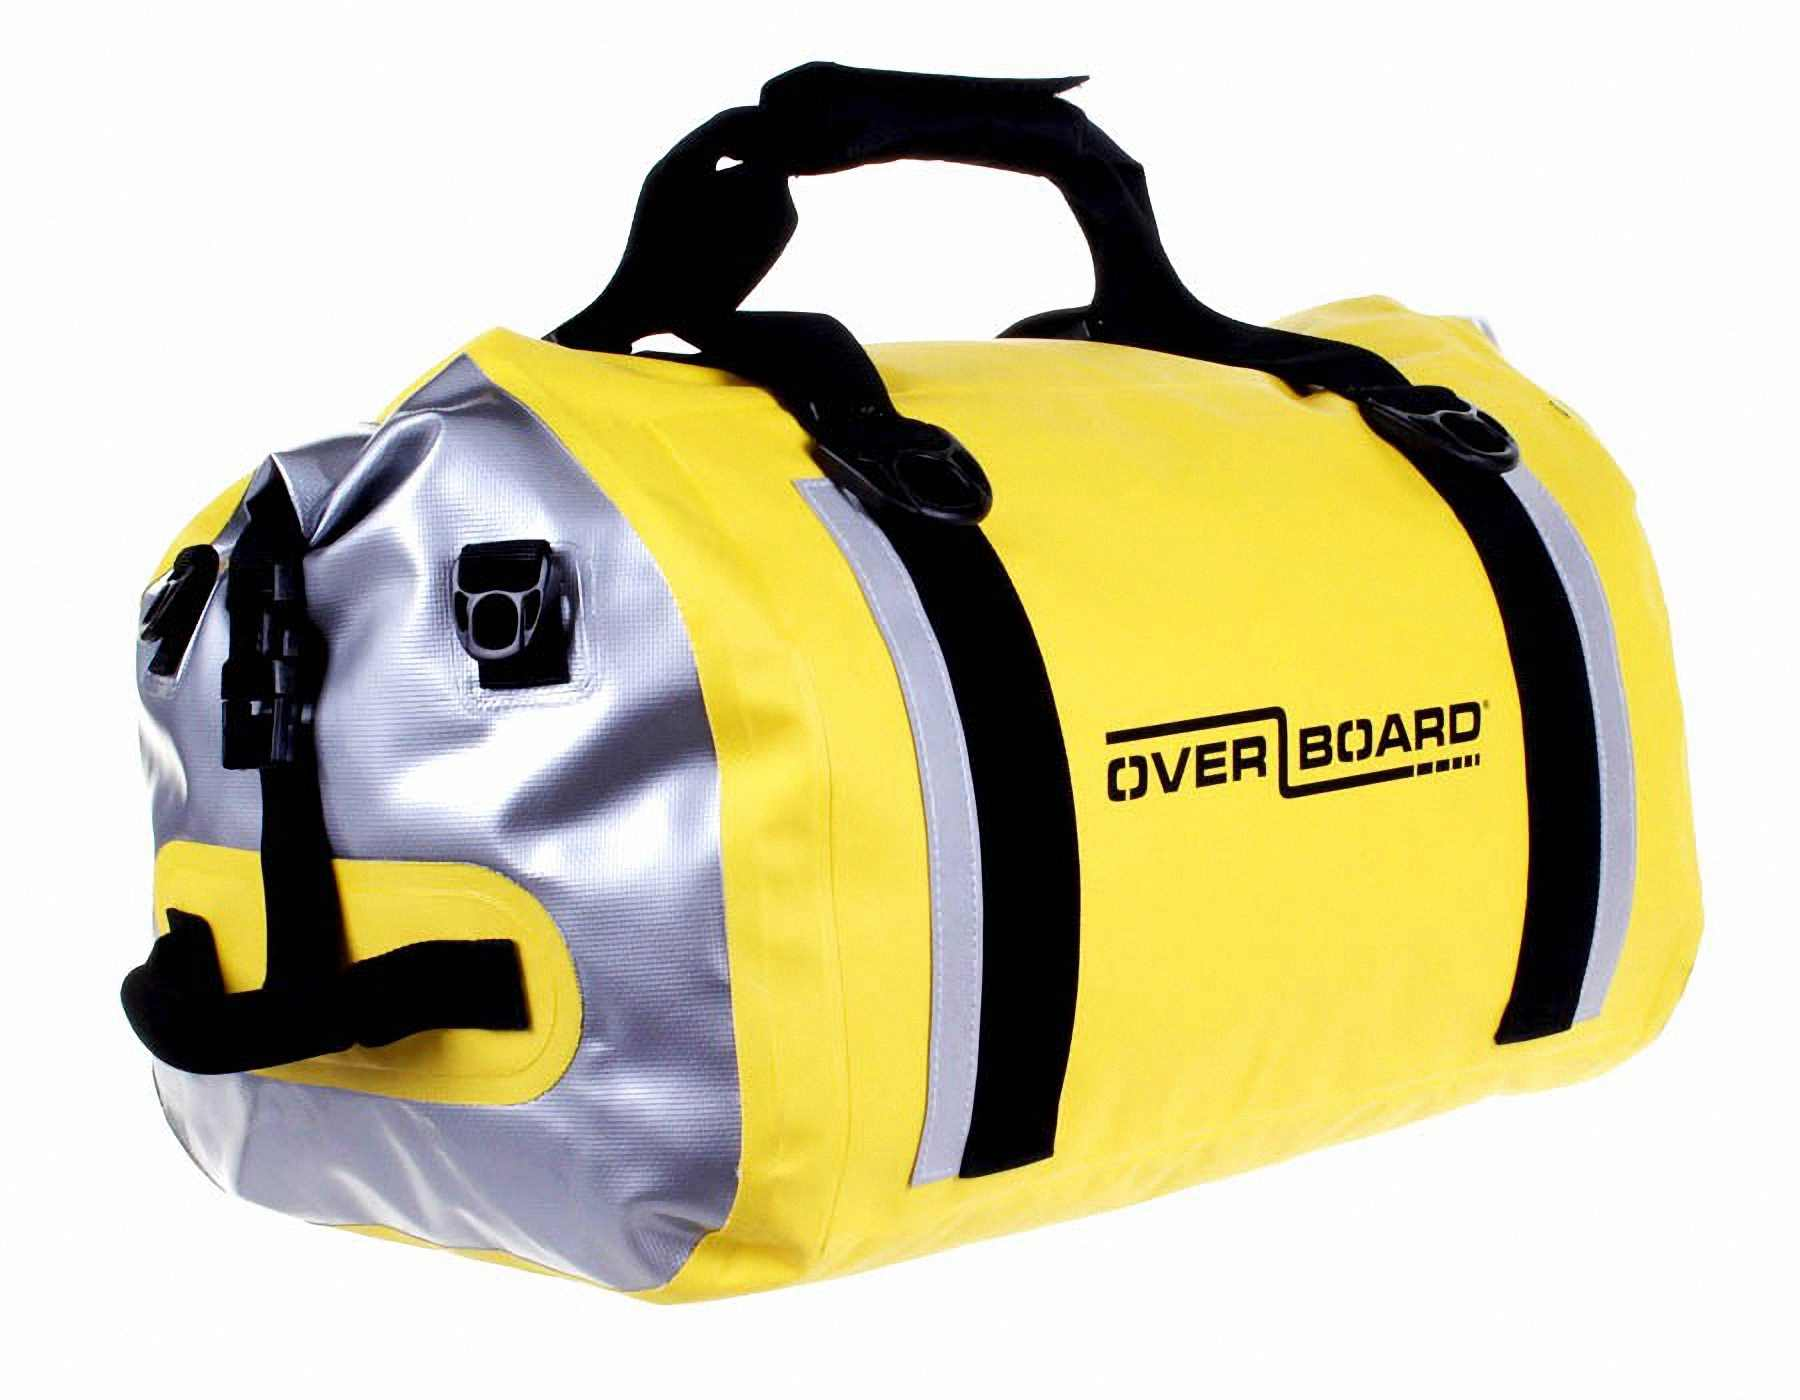 Водонепроницаемая сумка OverBoard OB1153Y - Pro-Sports Waterproof Duffel Bag - 40 литров.  Фото 6